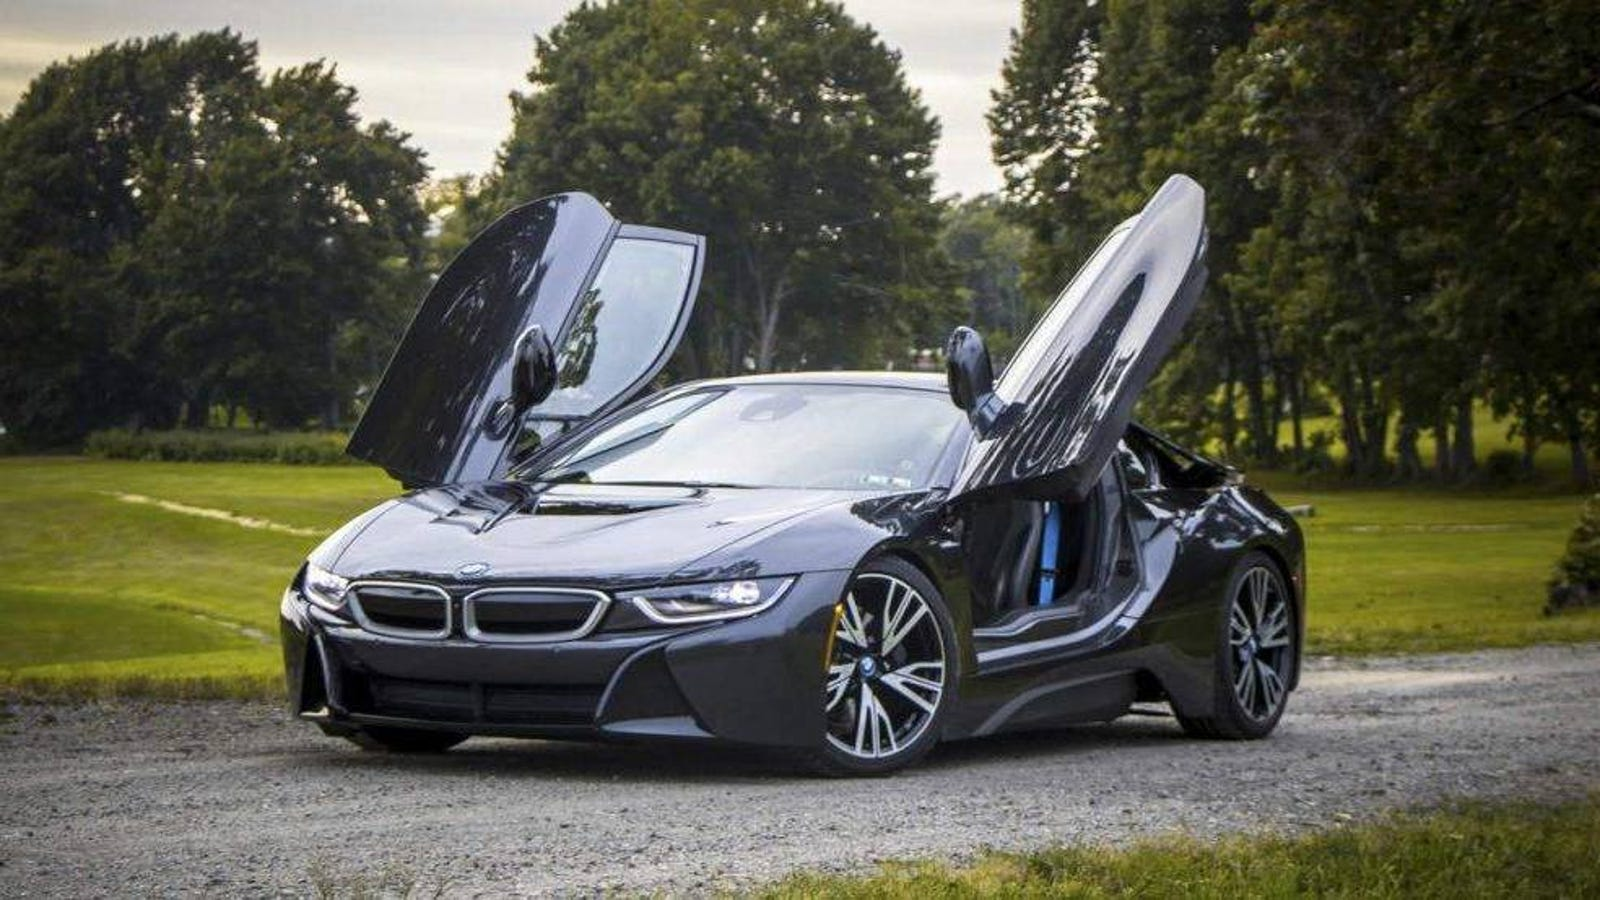 At $63,750, Could You Get Hyped Over This 2014 BMW i8 Hybrid?